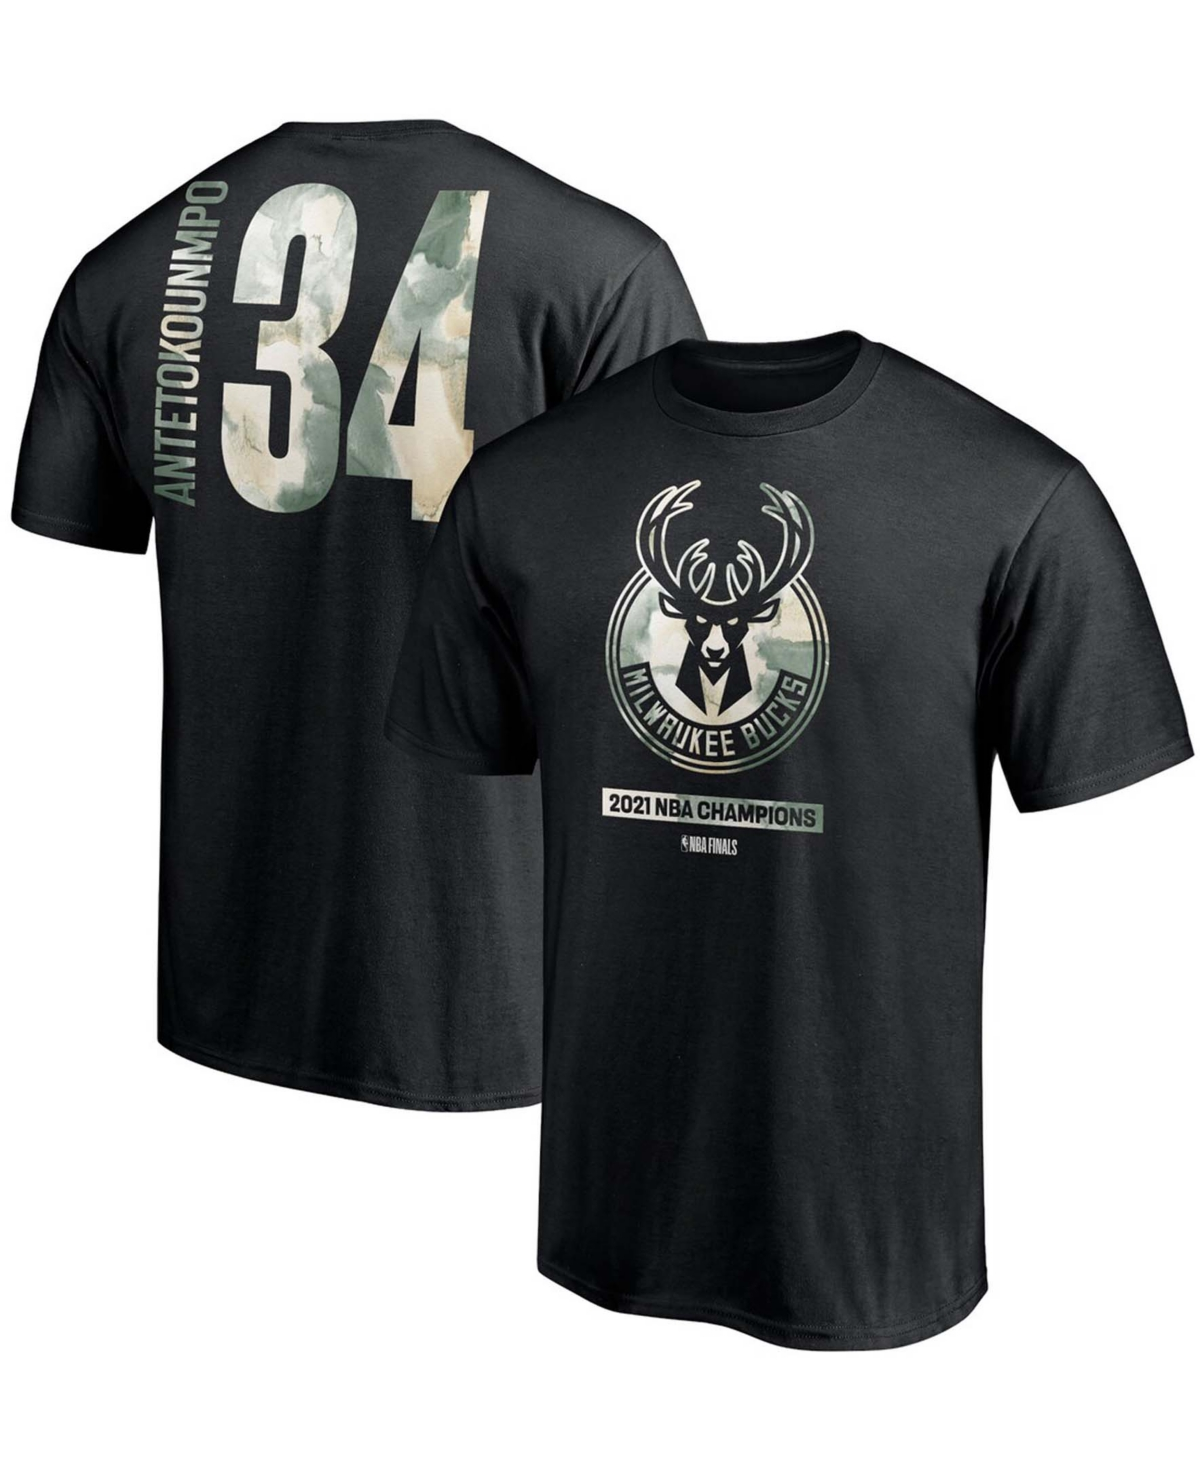 Men's Giannis Antetokounmpo Black Milwaukee Bucks 2021 Nba Finals Champions Believe in The Game Name Number T-shirt